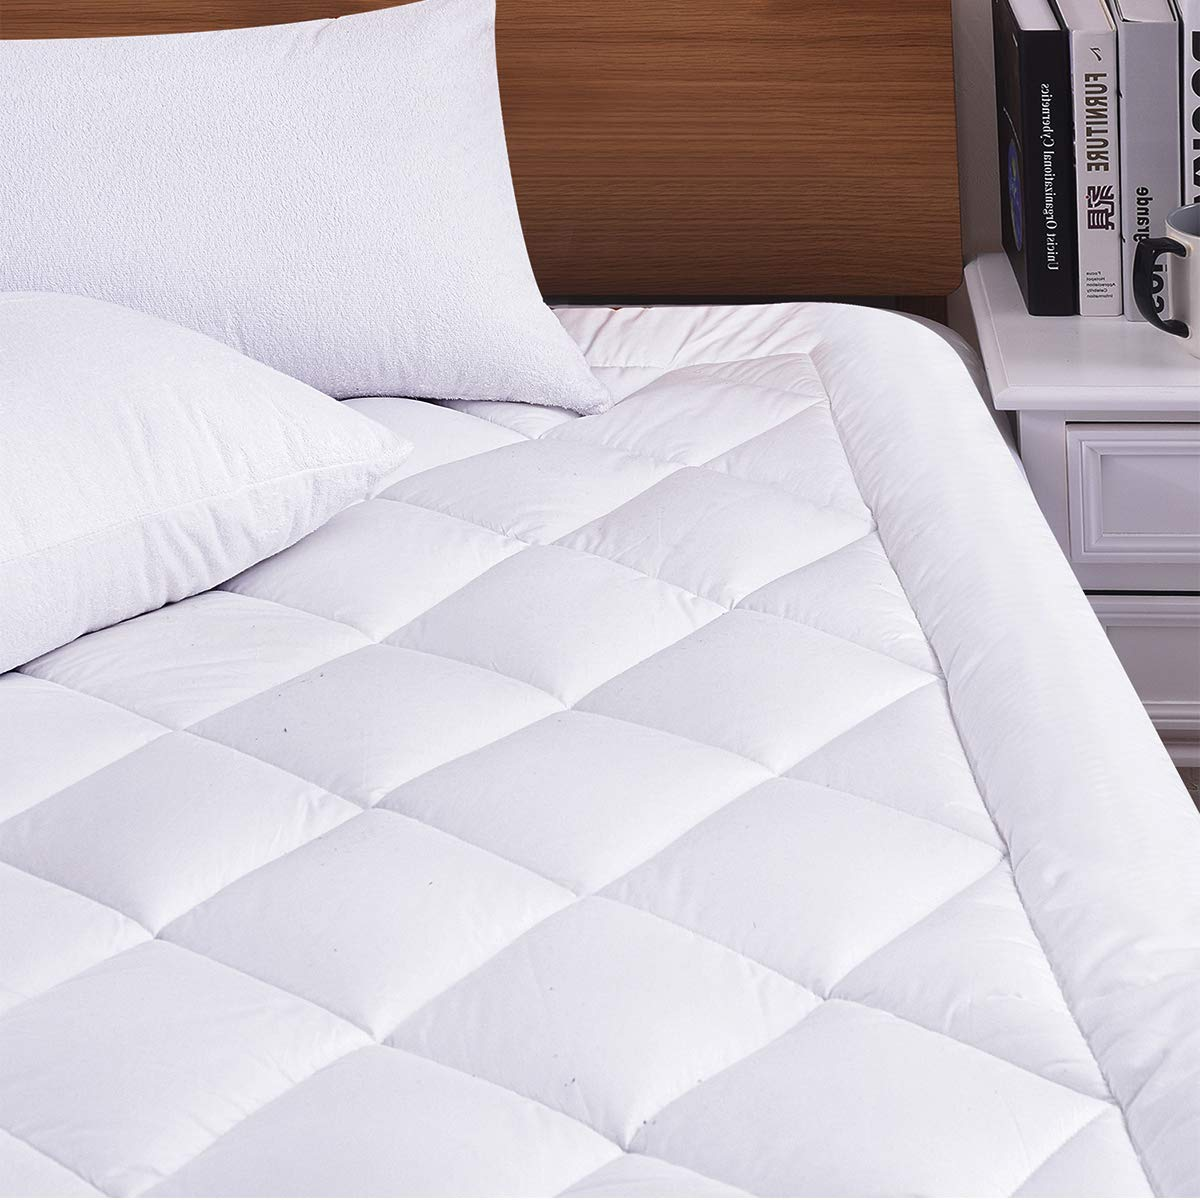 Hokly Pad Topper Hypoallergenic Cover Alternative Thickness